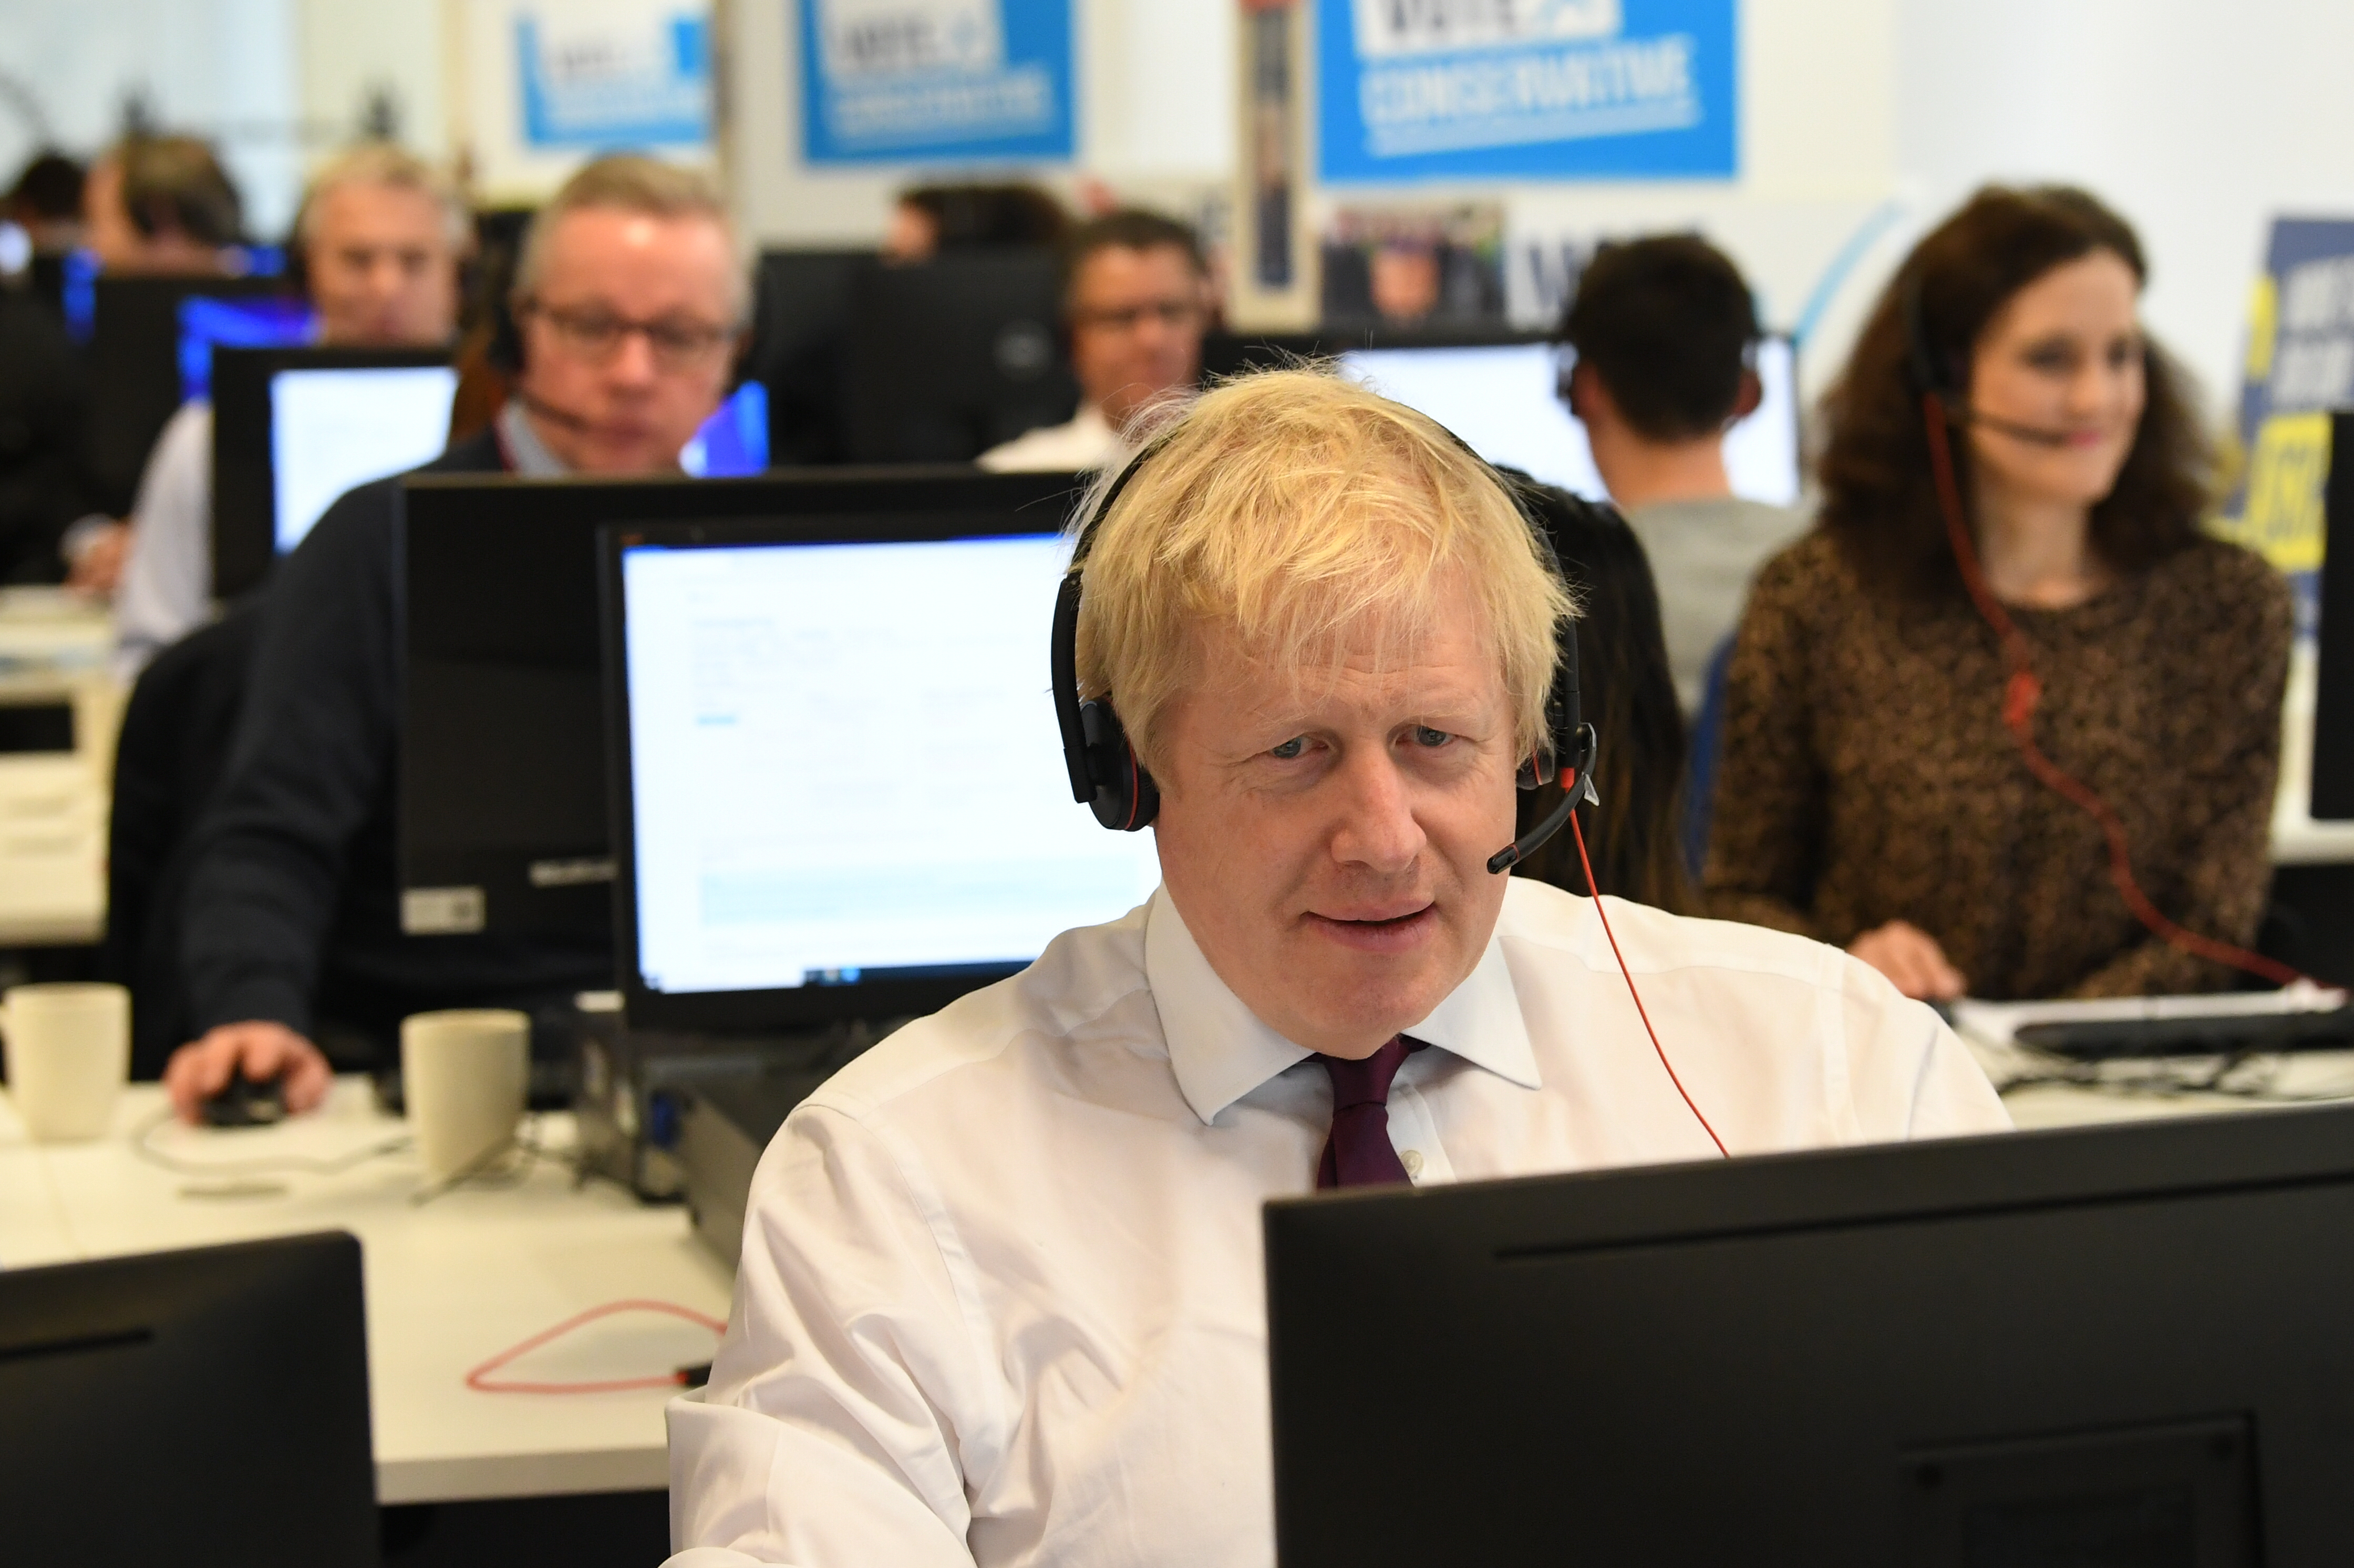 Prime Minister Boris Johnson with other members of his Cabinet at Conservative Campaign Headquarters Call Centre, London, while on the election campaign trail.